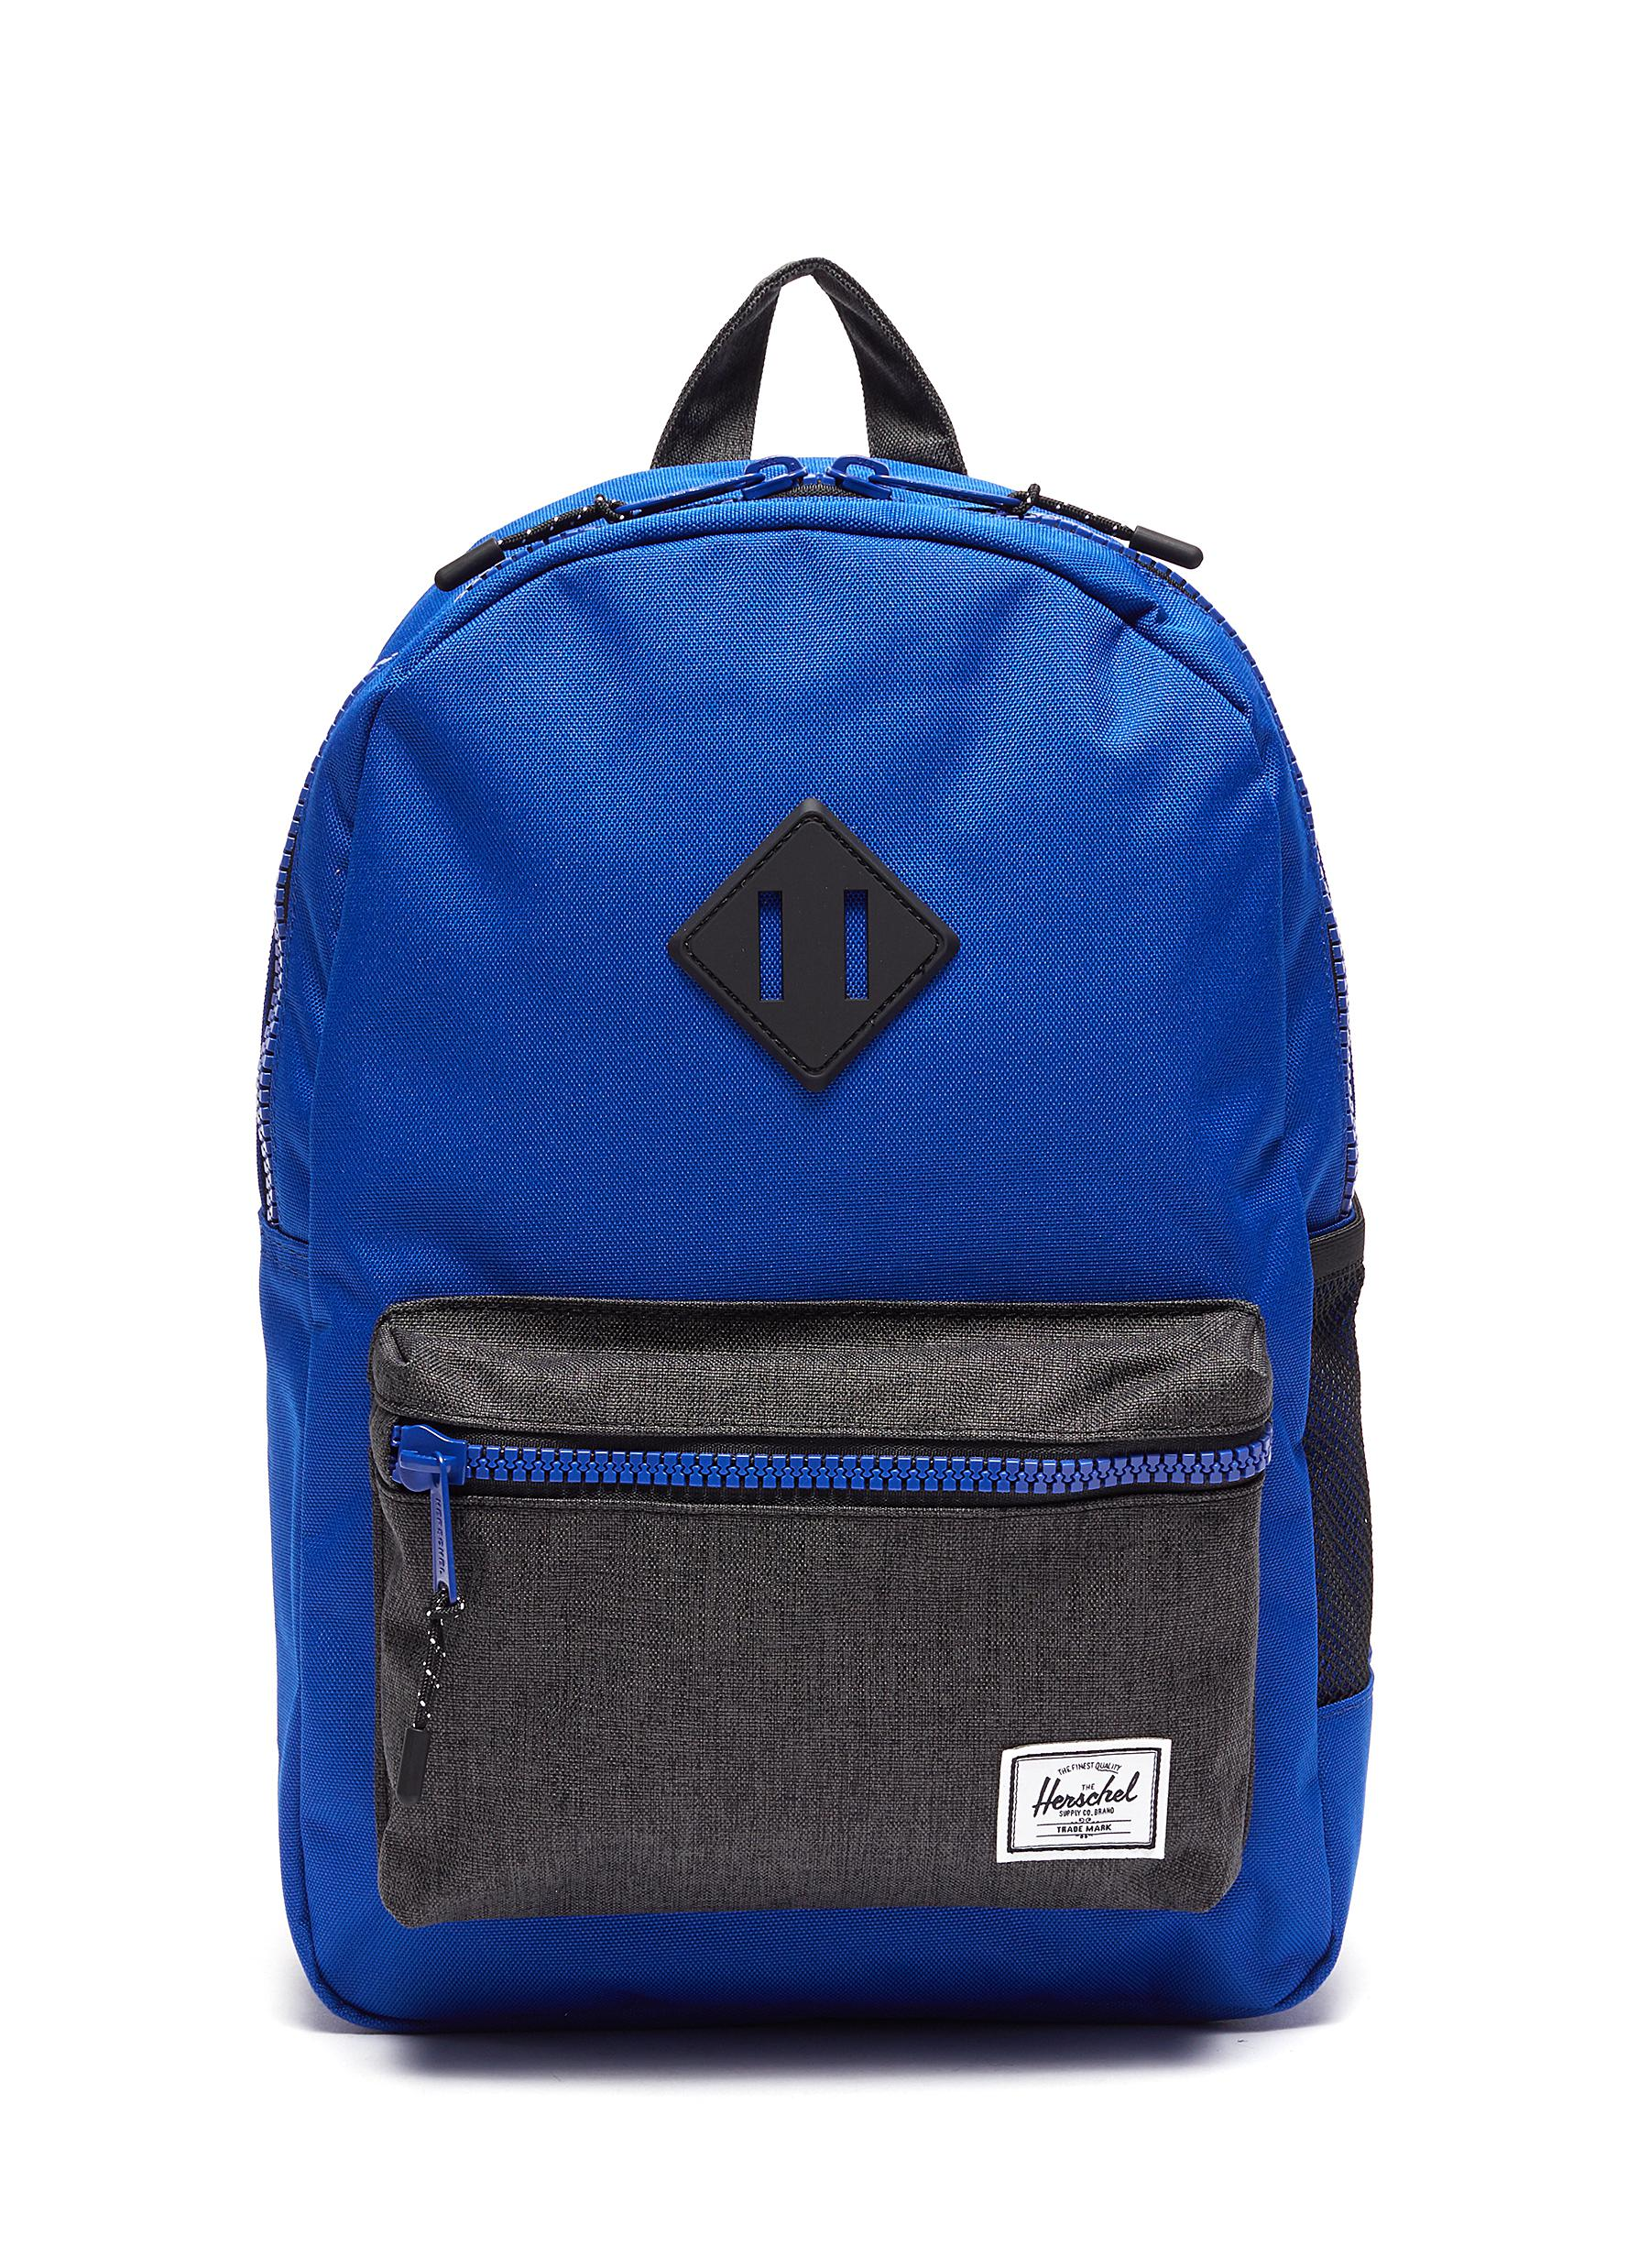 Heritage Youth' canvas backpack - THE HERSCHEL SUPPLY CO. - Modalova